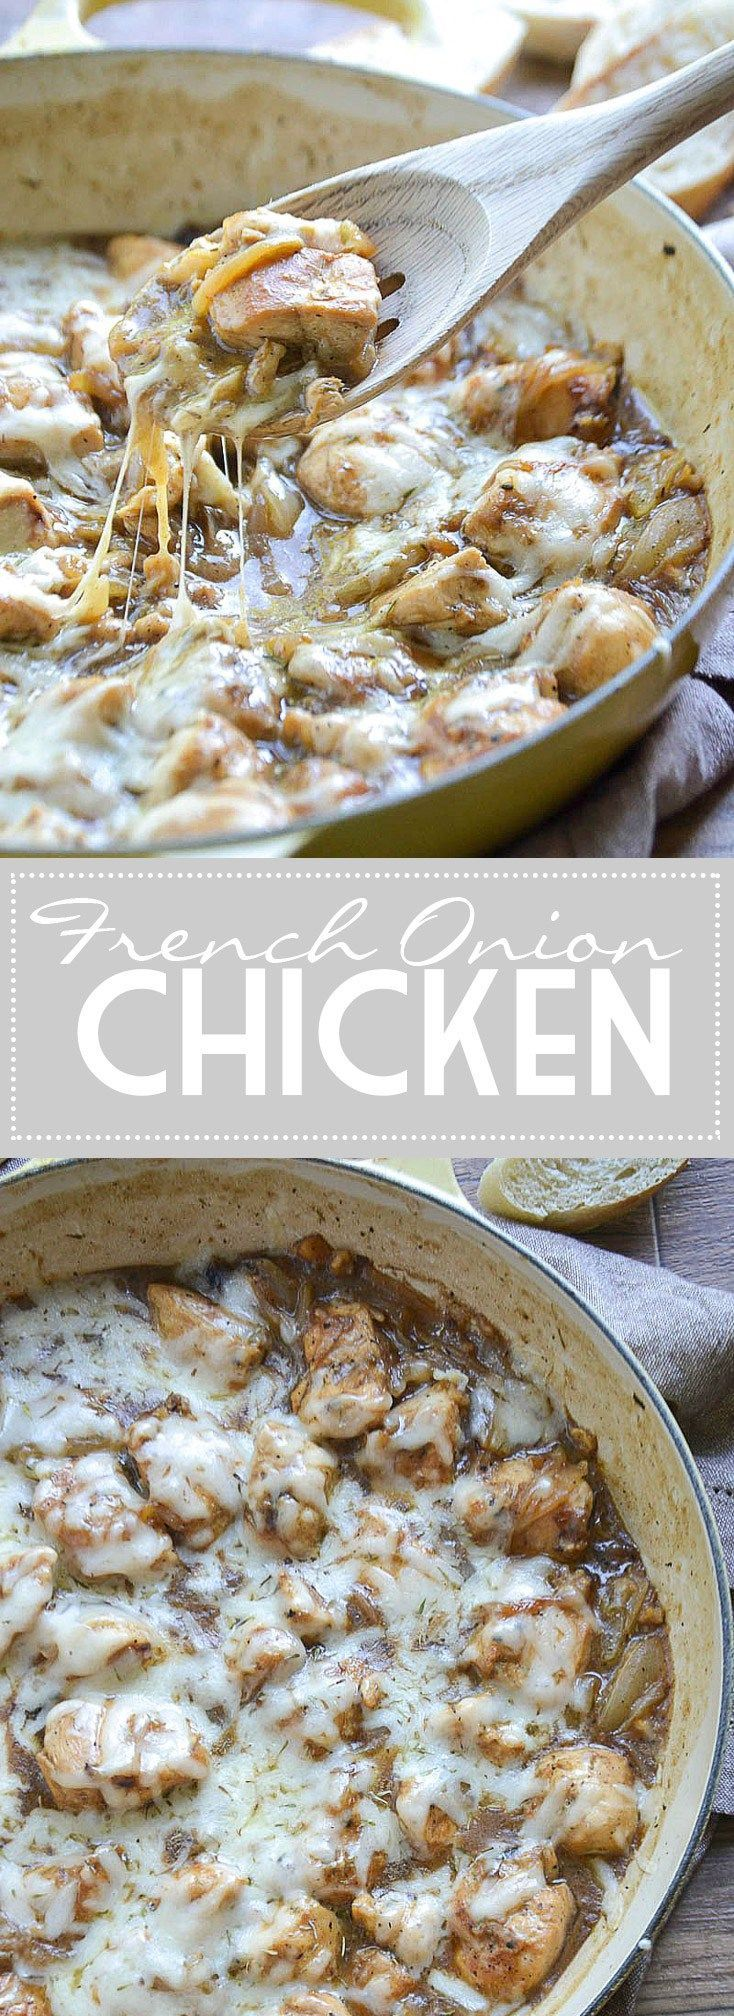 French Onion Chicken